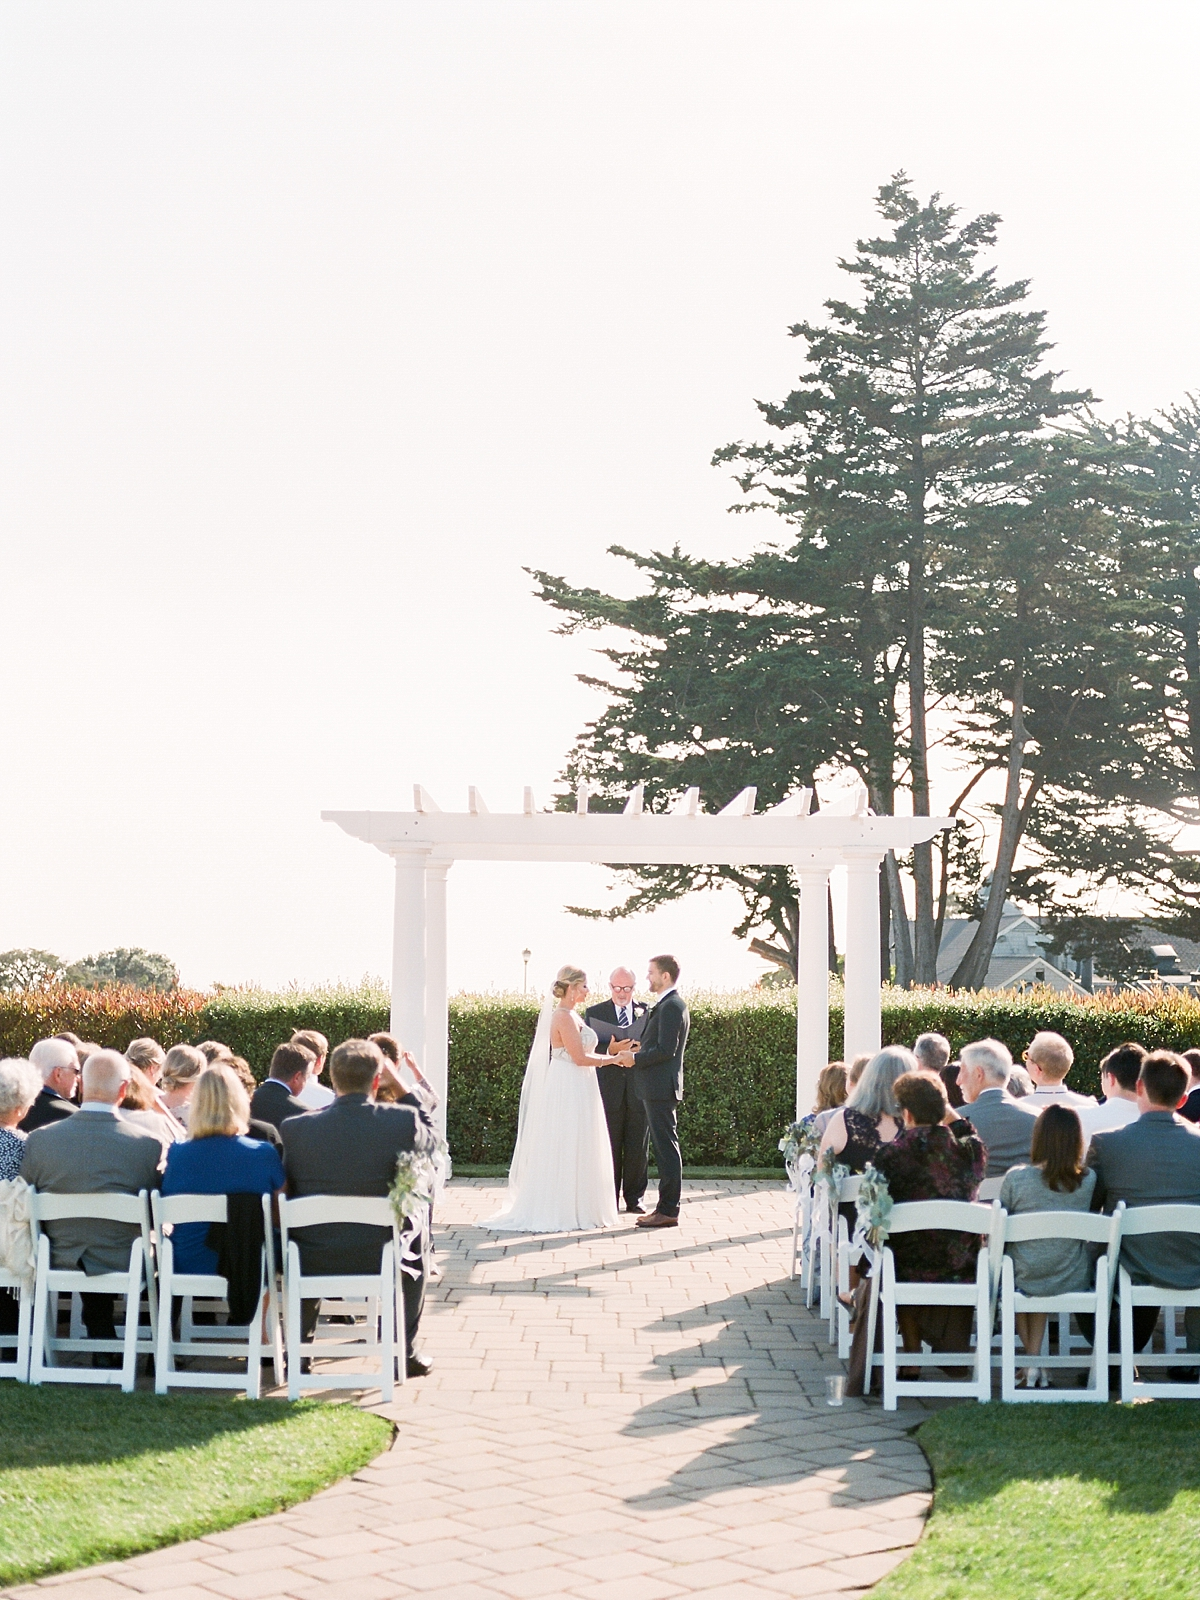 Romantic Coastal Wedding Ceremony in Half Moon Bay